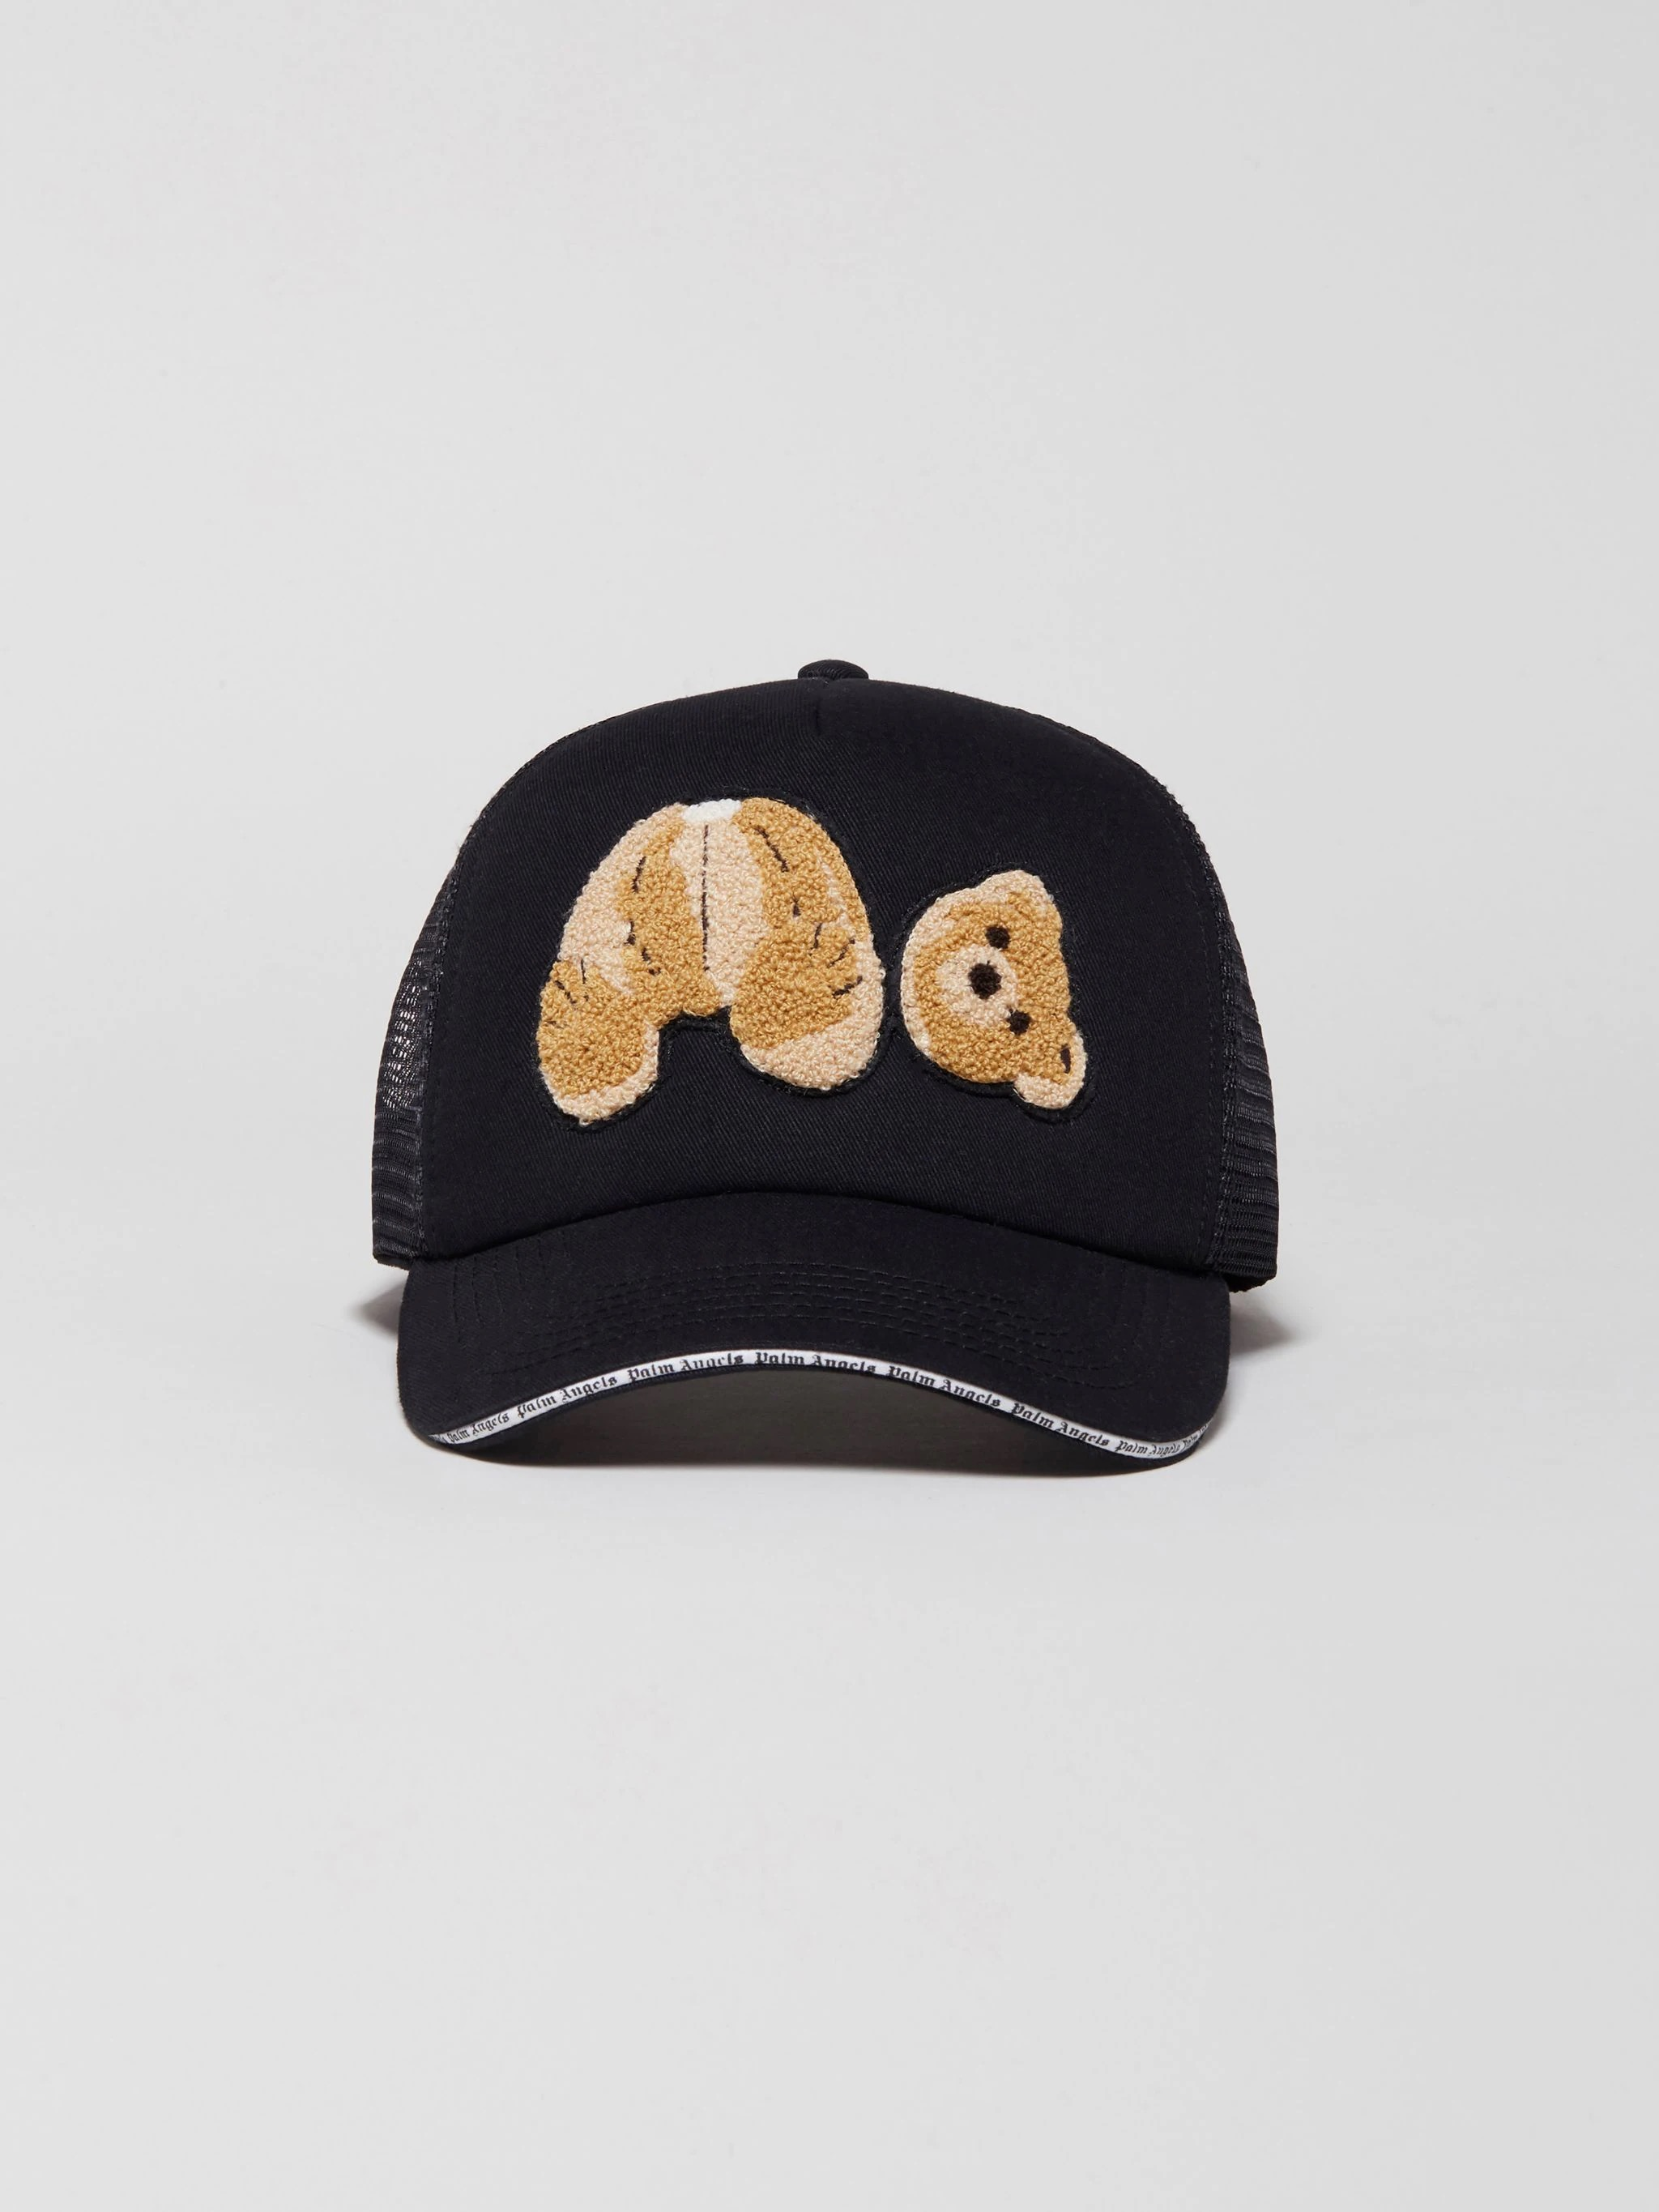 Palm Angles' cute teddy bear hat with mesh backing.